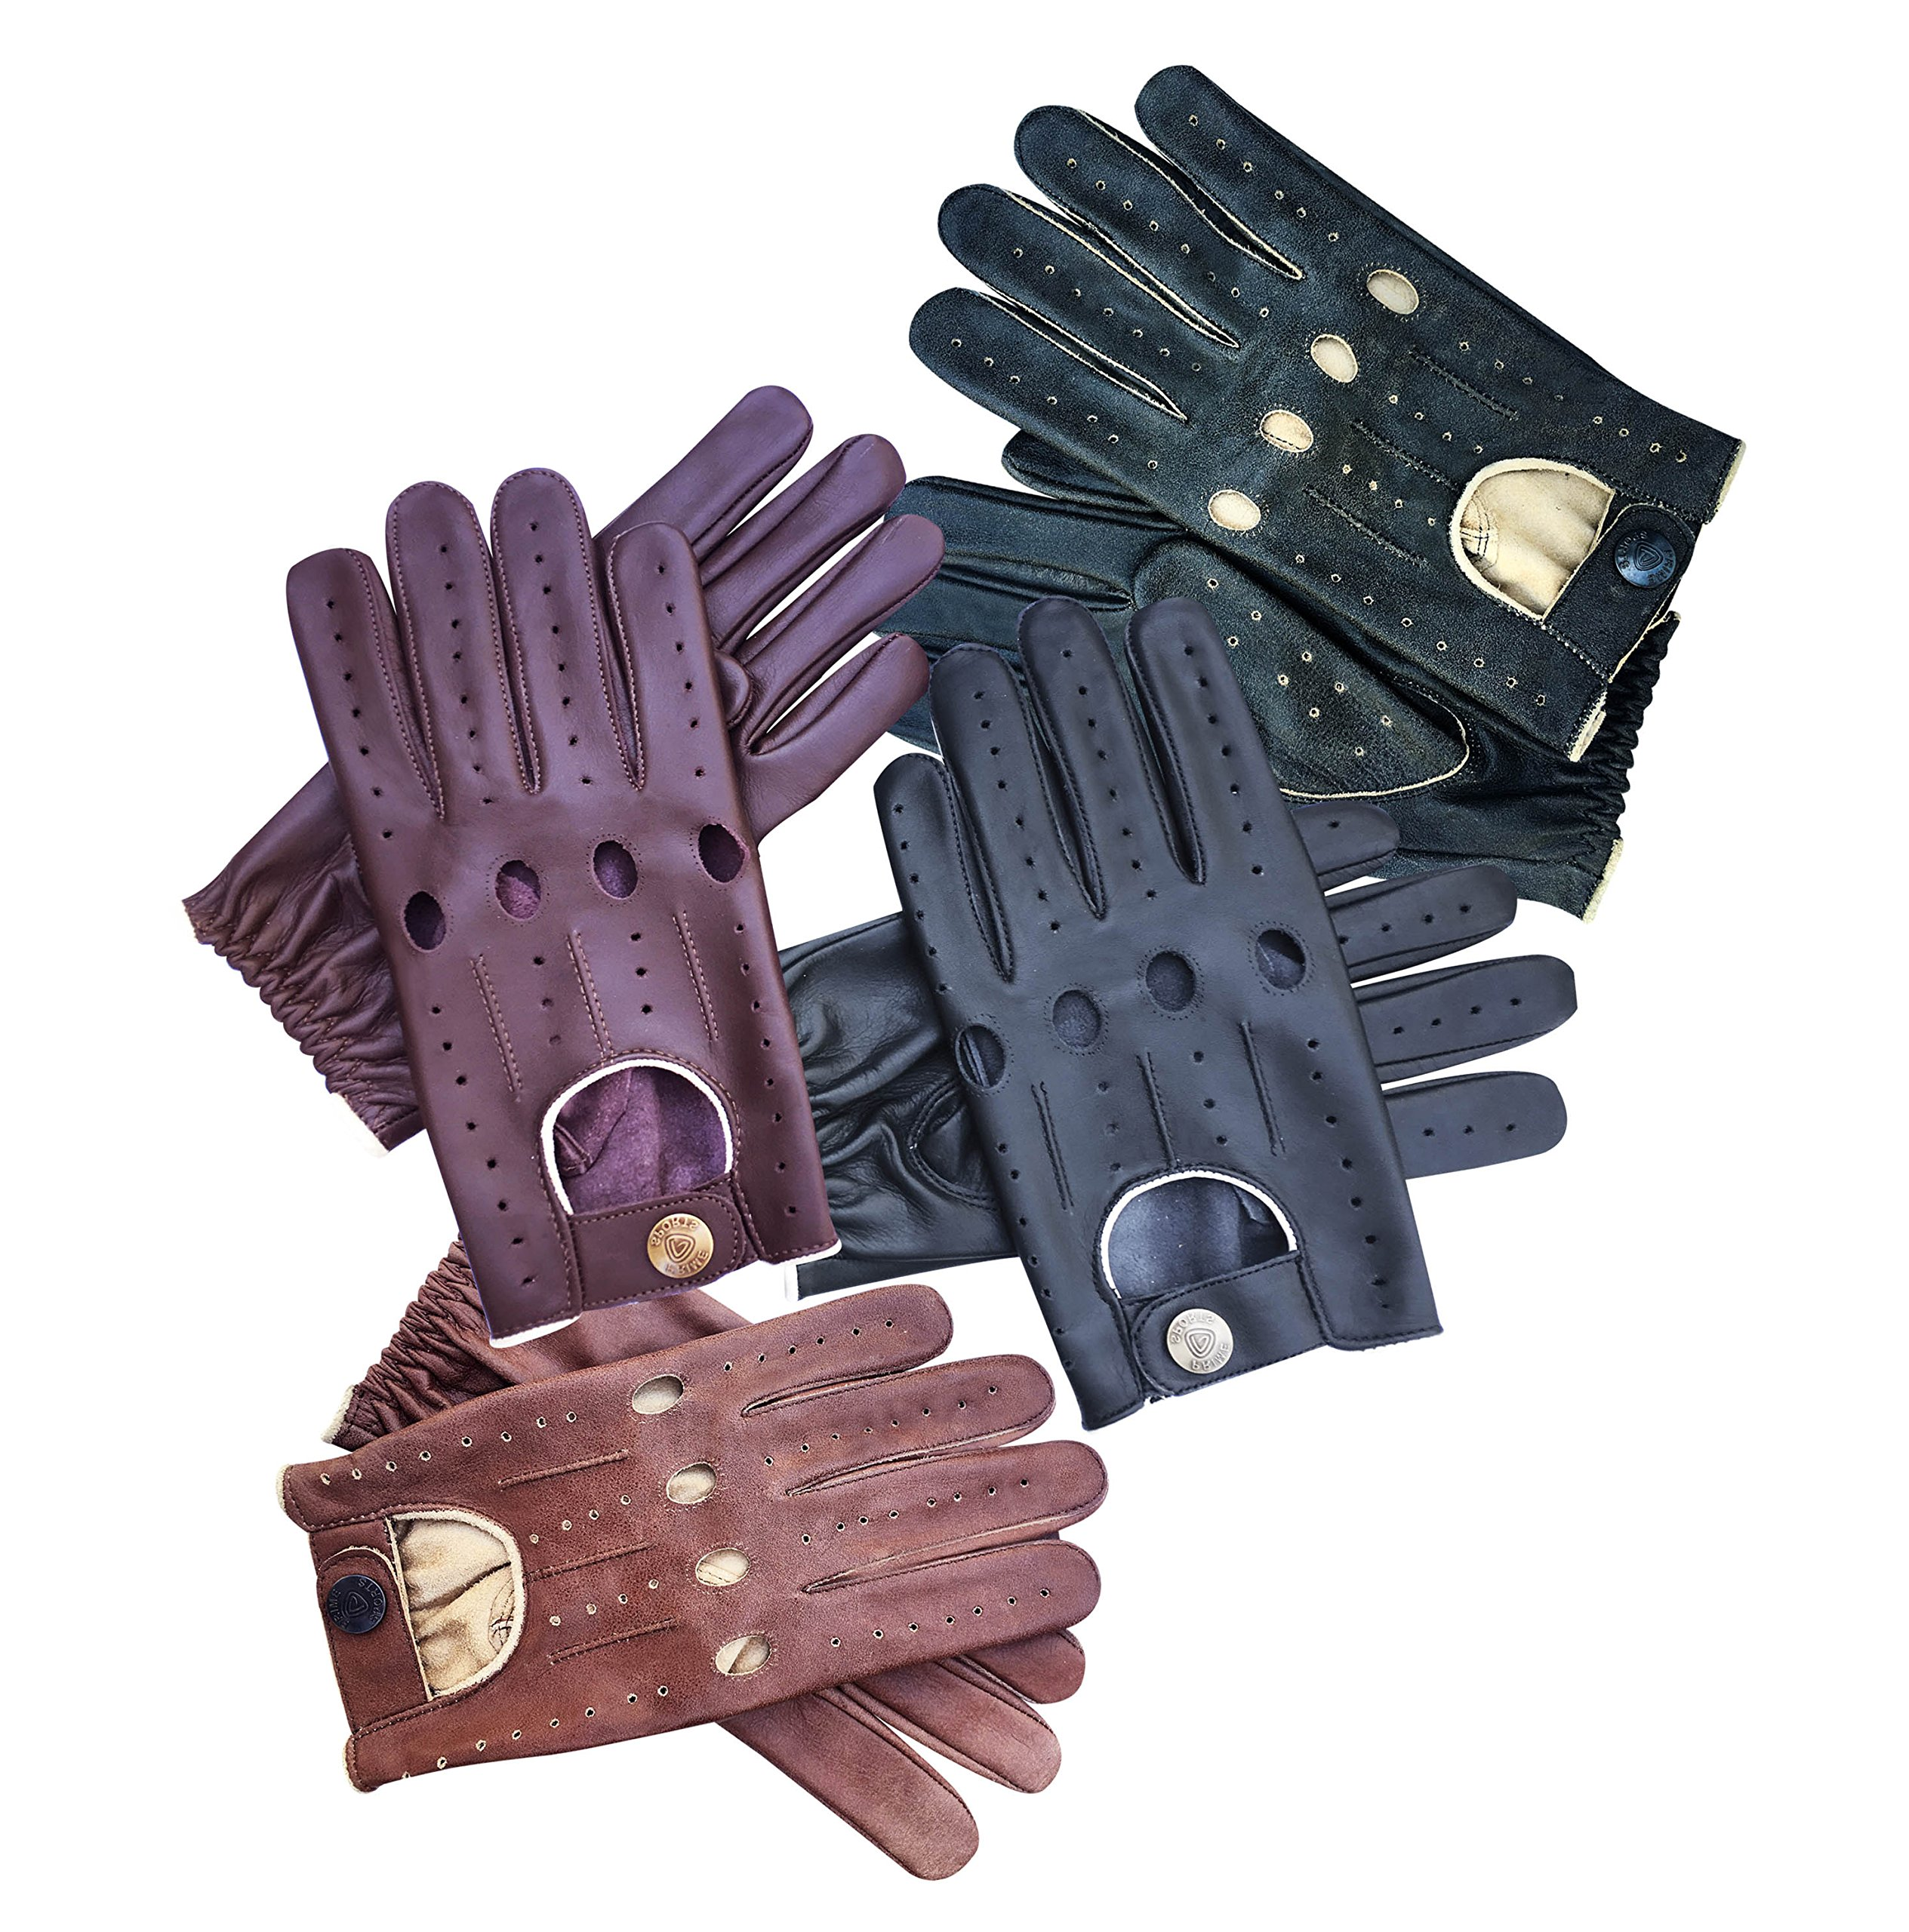 75952e8edbf30 Prime Sports Men's Genuine Leather Driving Gloves (Large, Brown Cracker)